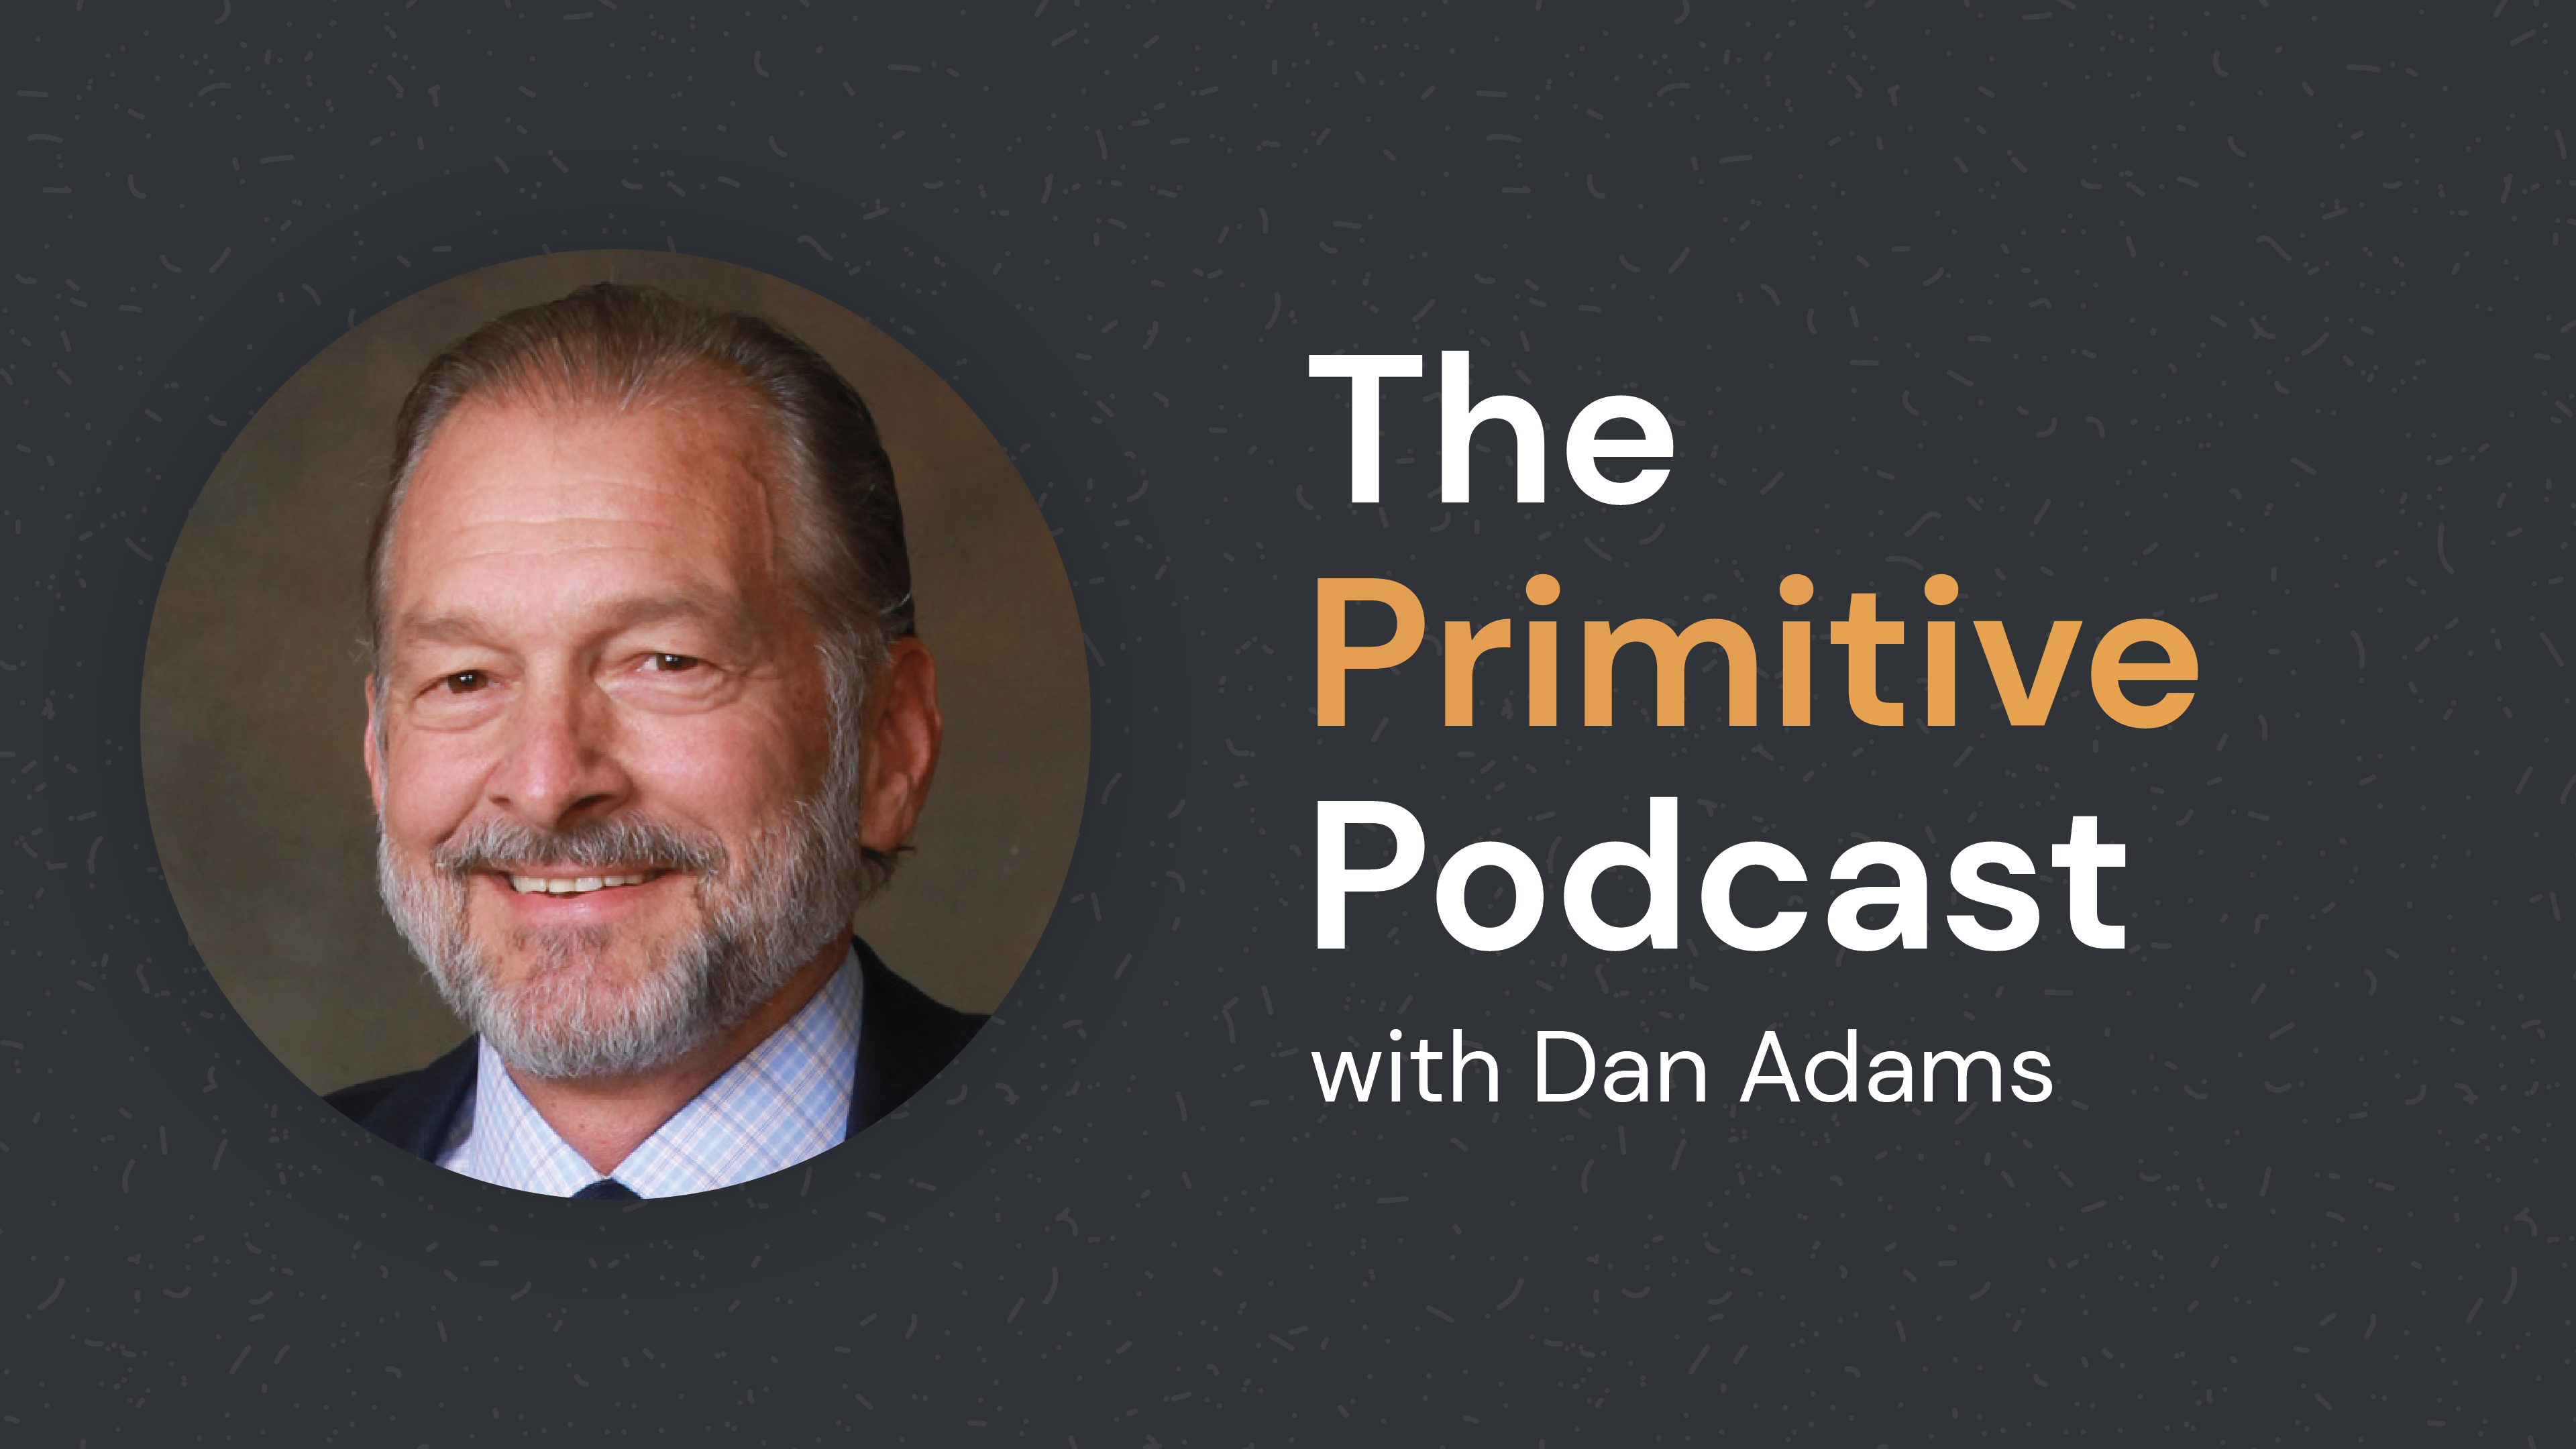 dan-adams-primitive-podcast